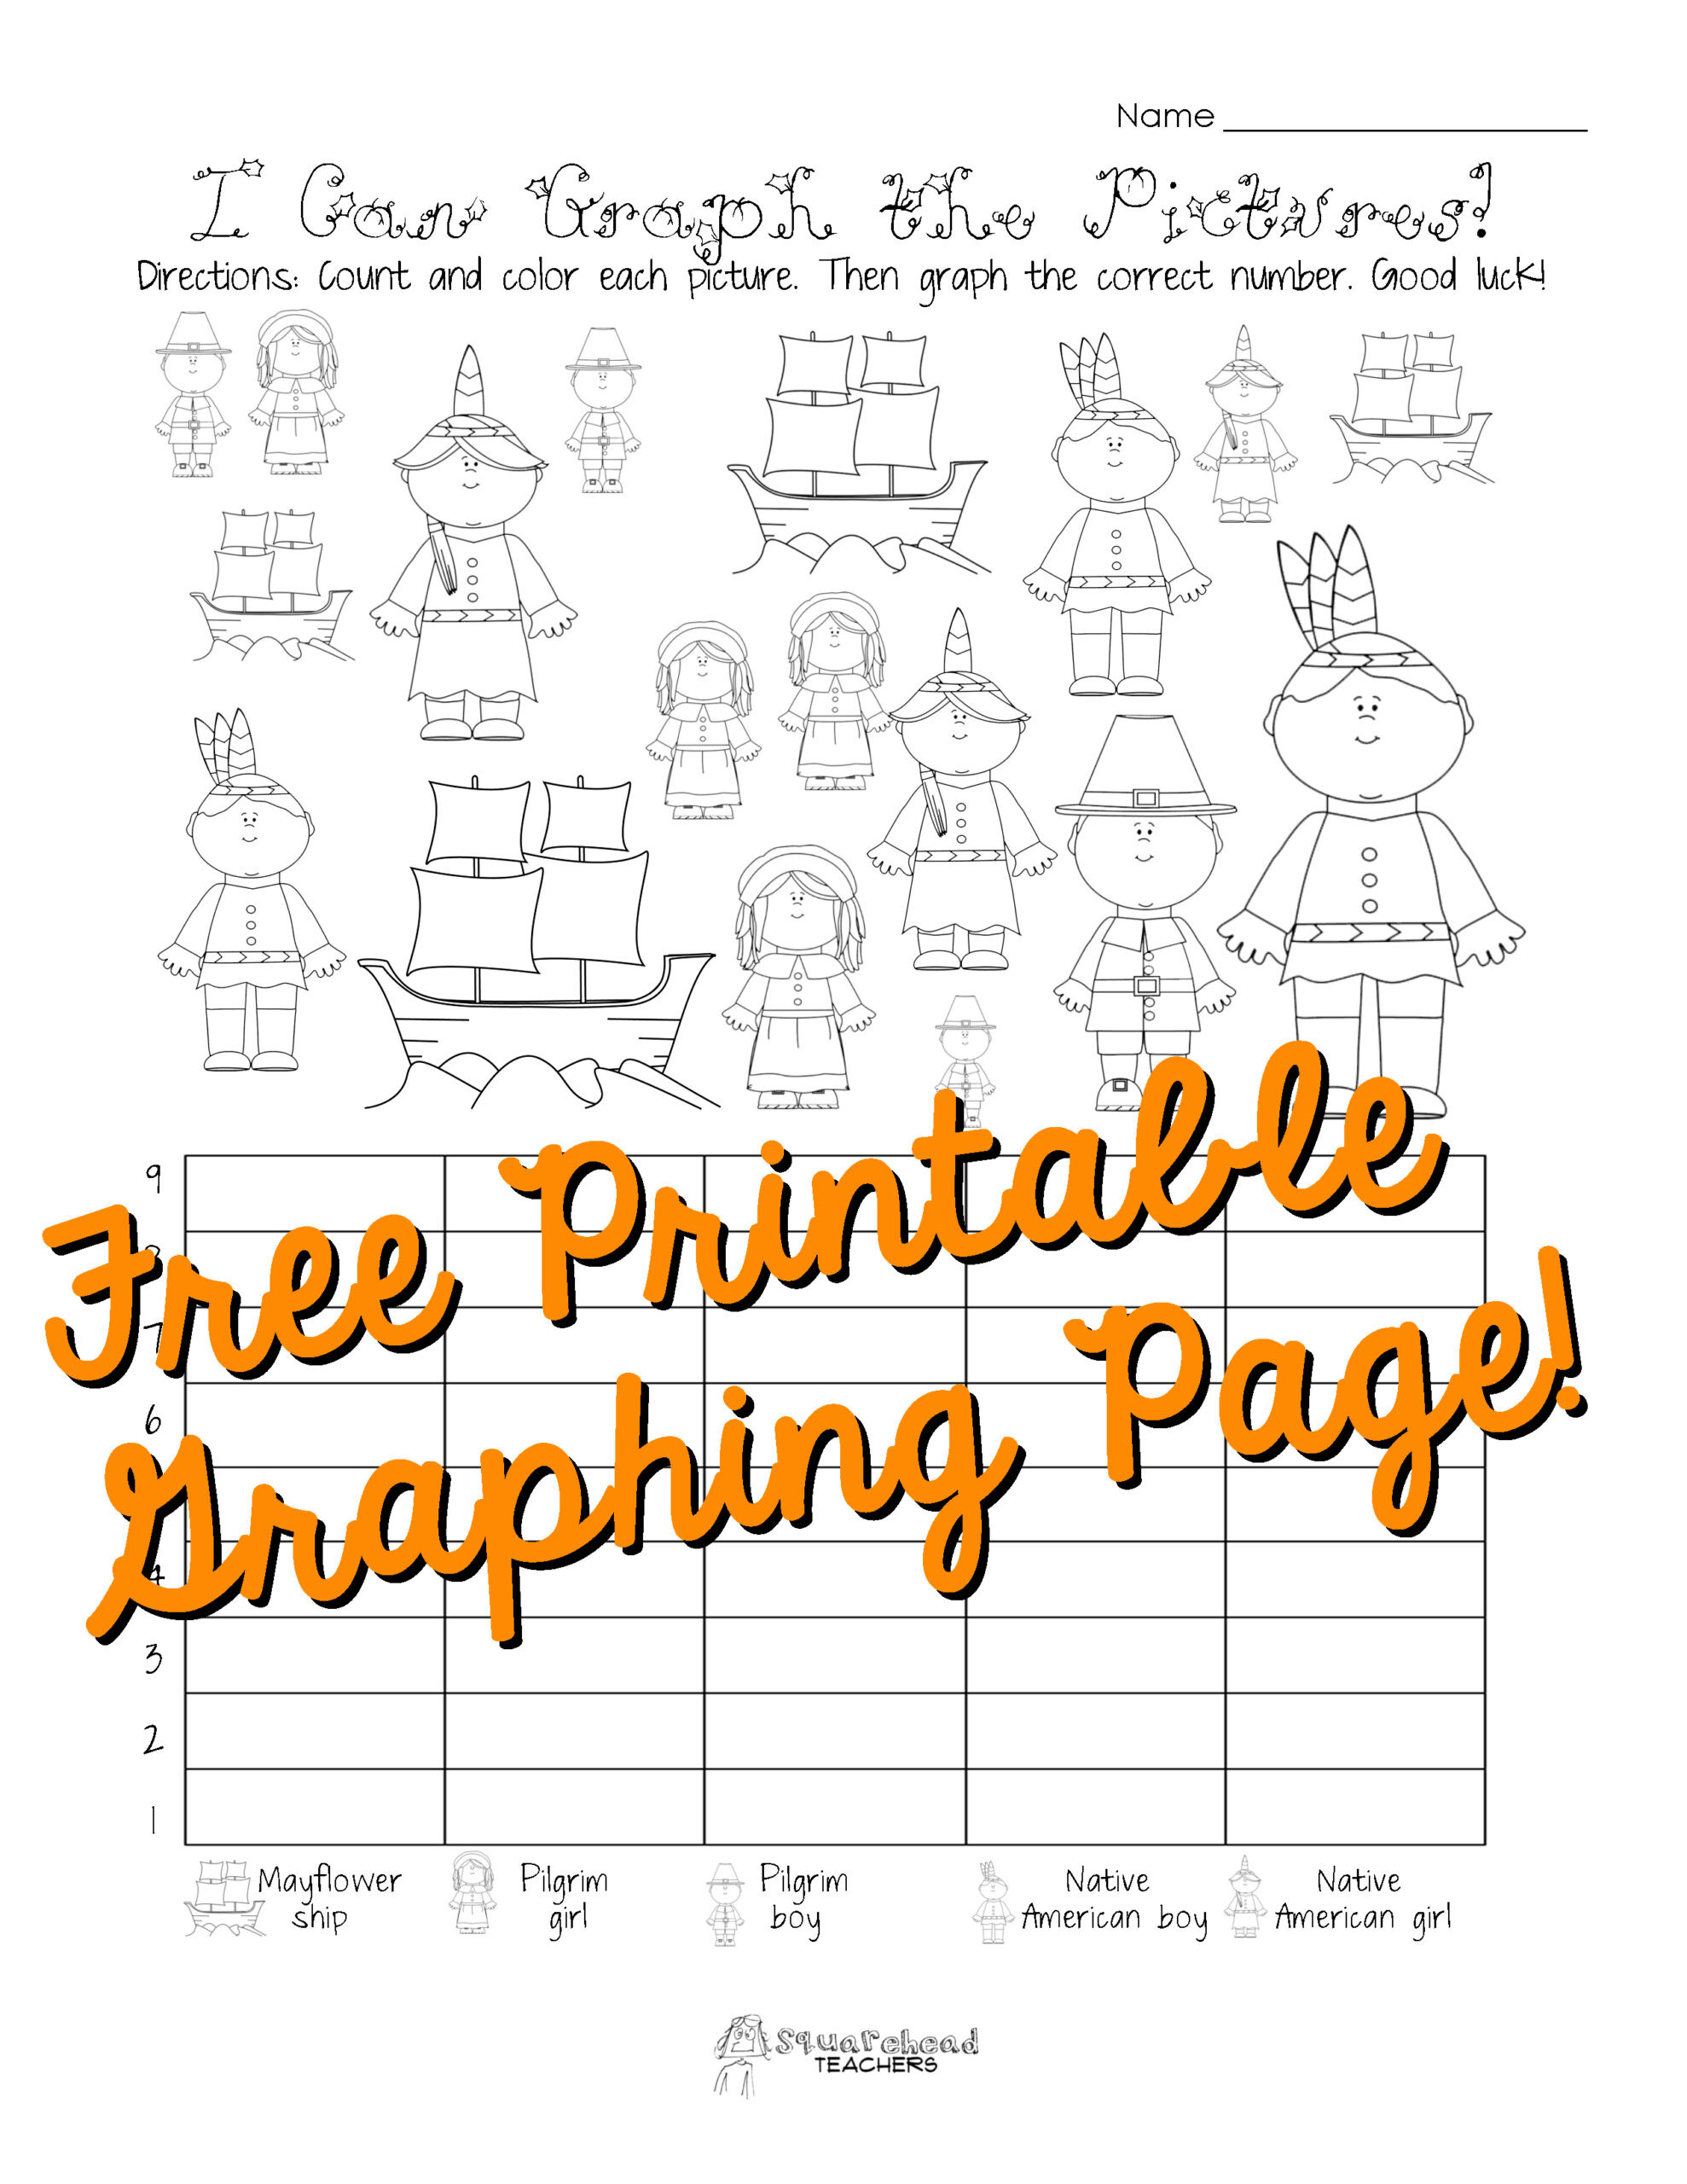 Thanksgiving Math Worksheets First Grade Childrens Math Sheets Hard Word Searches Printable